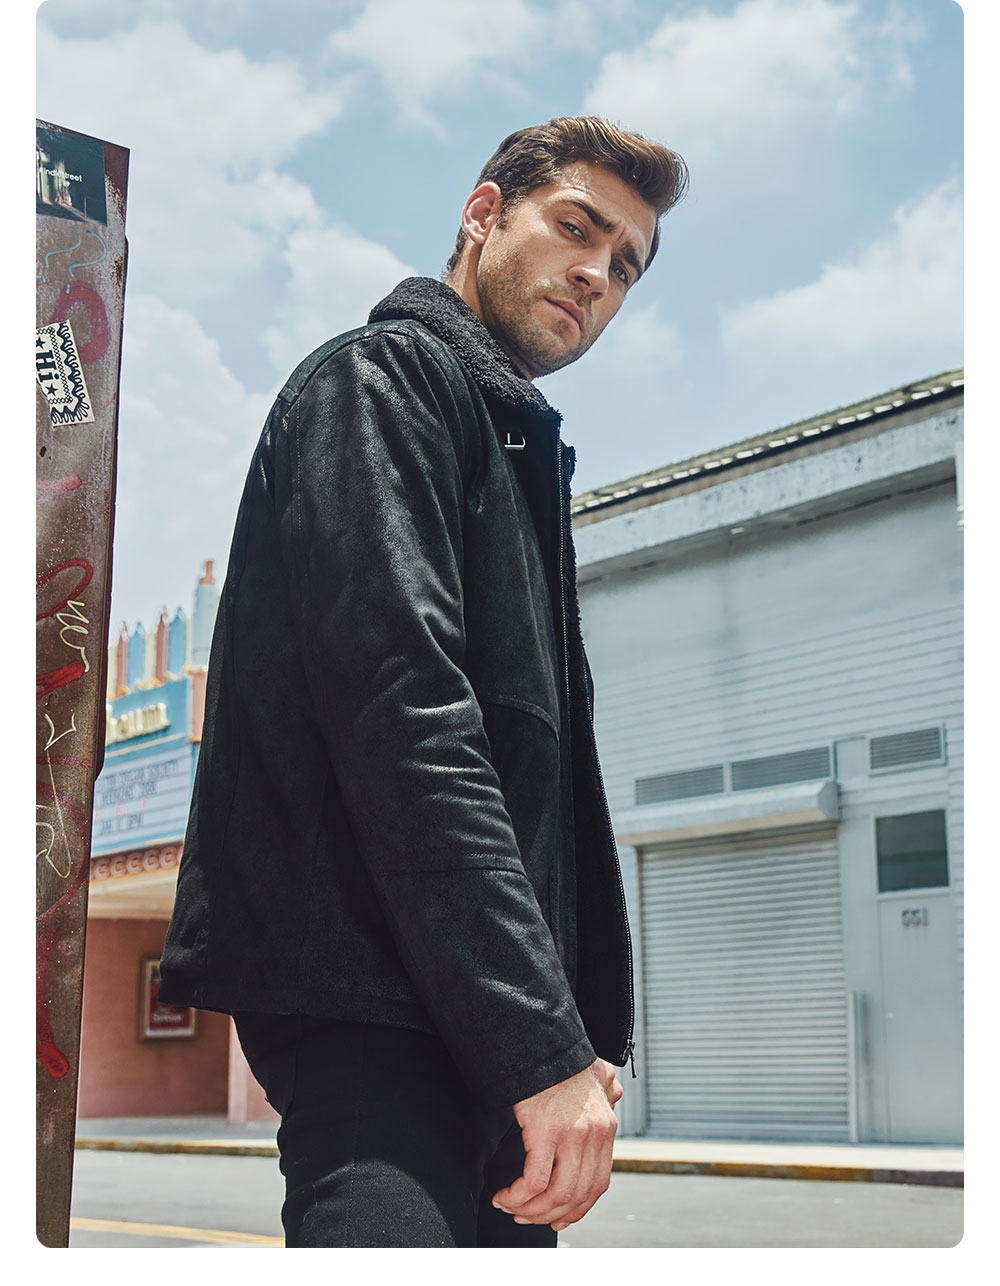 Hc2ce52d8670c4c64b8c46eeec76fb4d7W FLAVOR New Men's Genuine Leather Motorcycle Jacket Pigskin with Faux Shearling Real Leather Jacket Bomber Coat Men